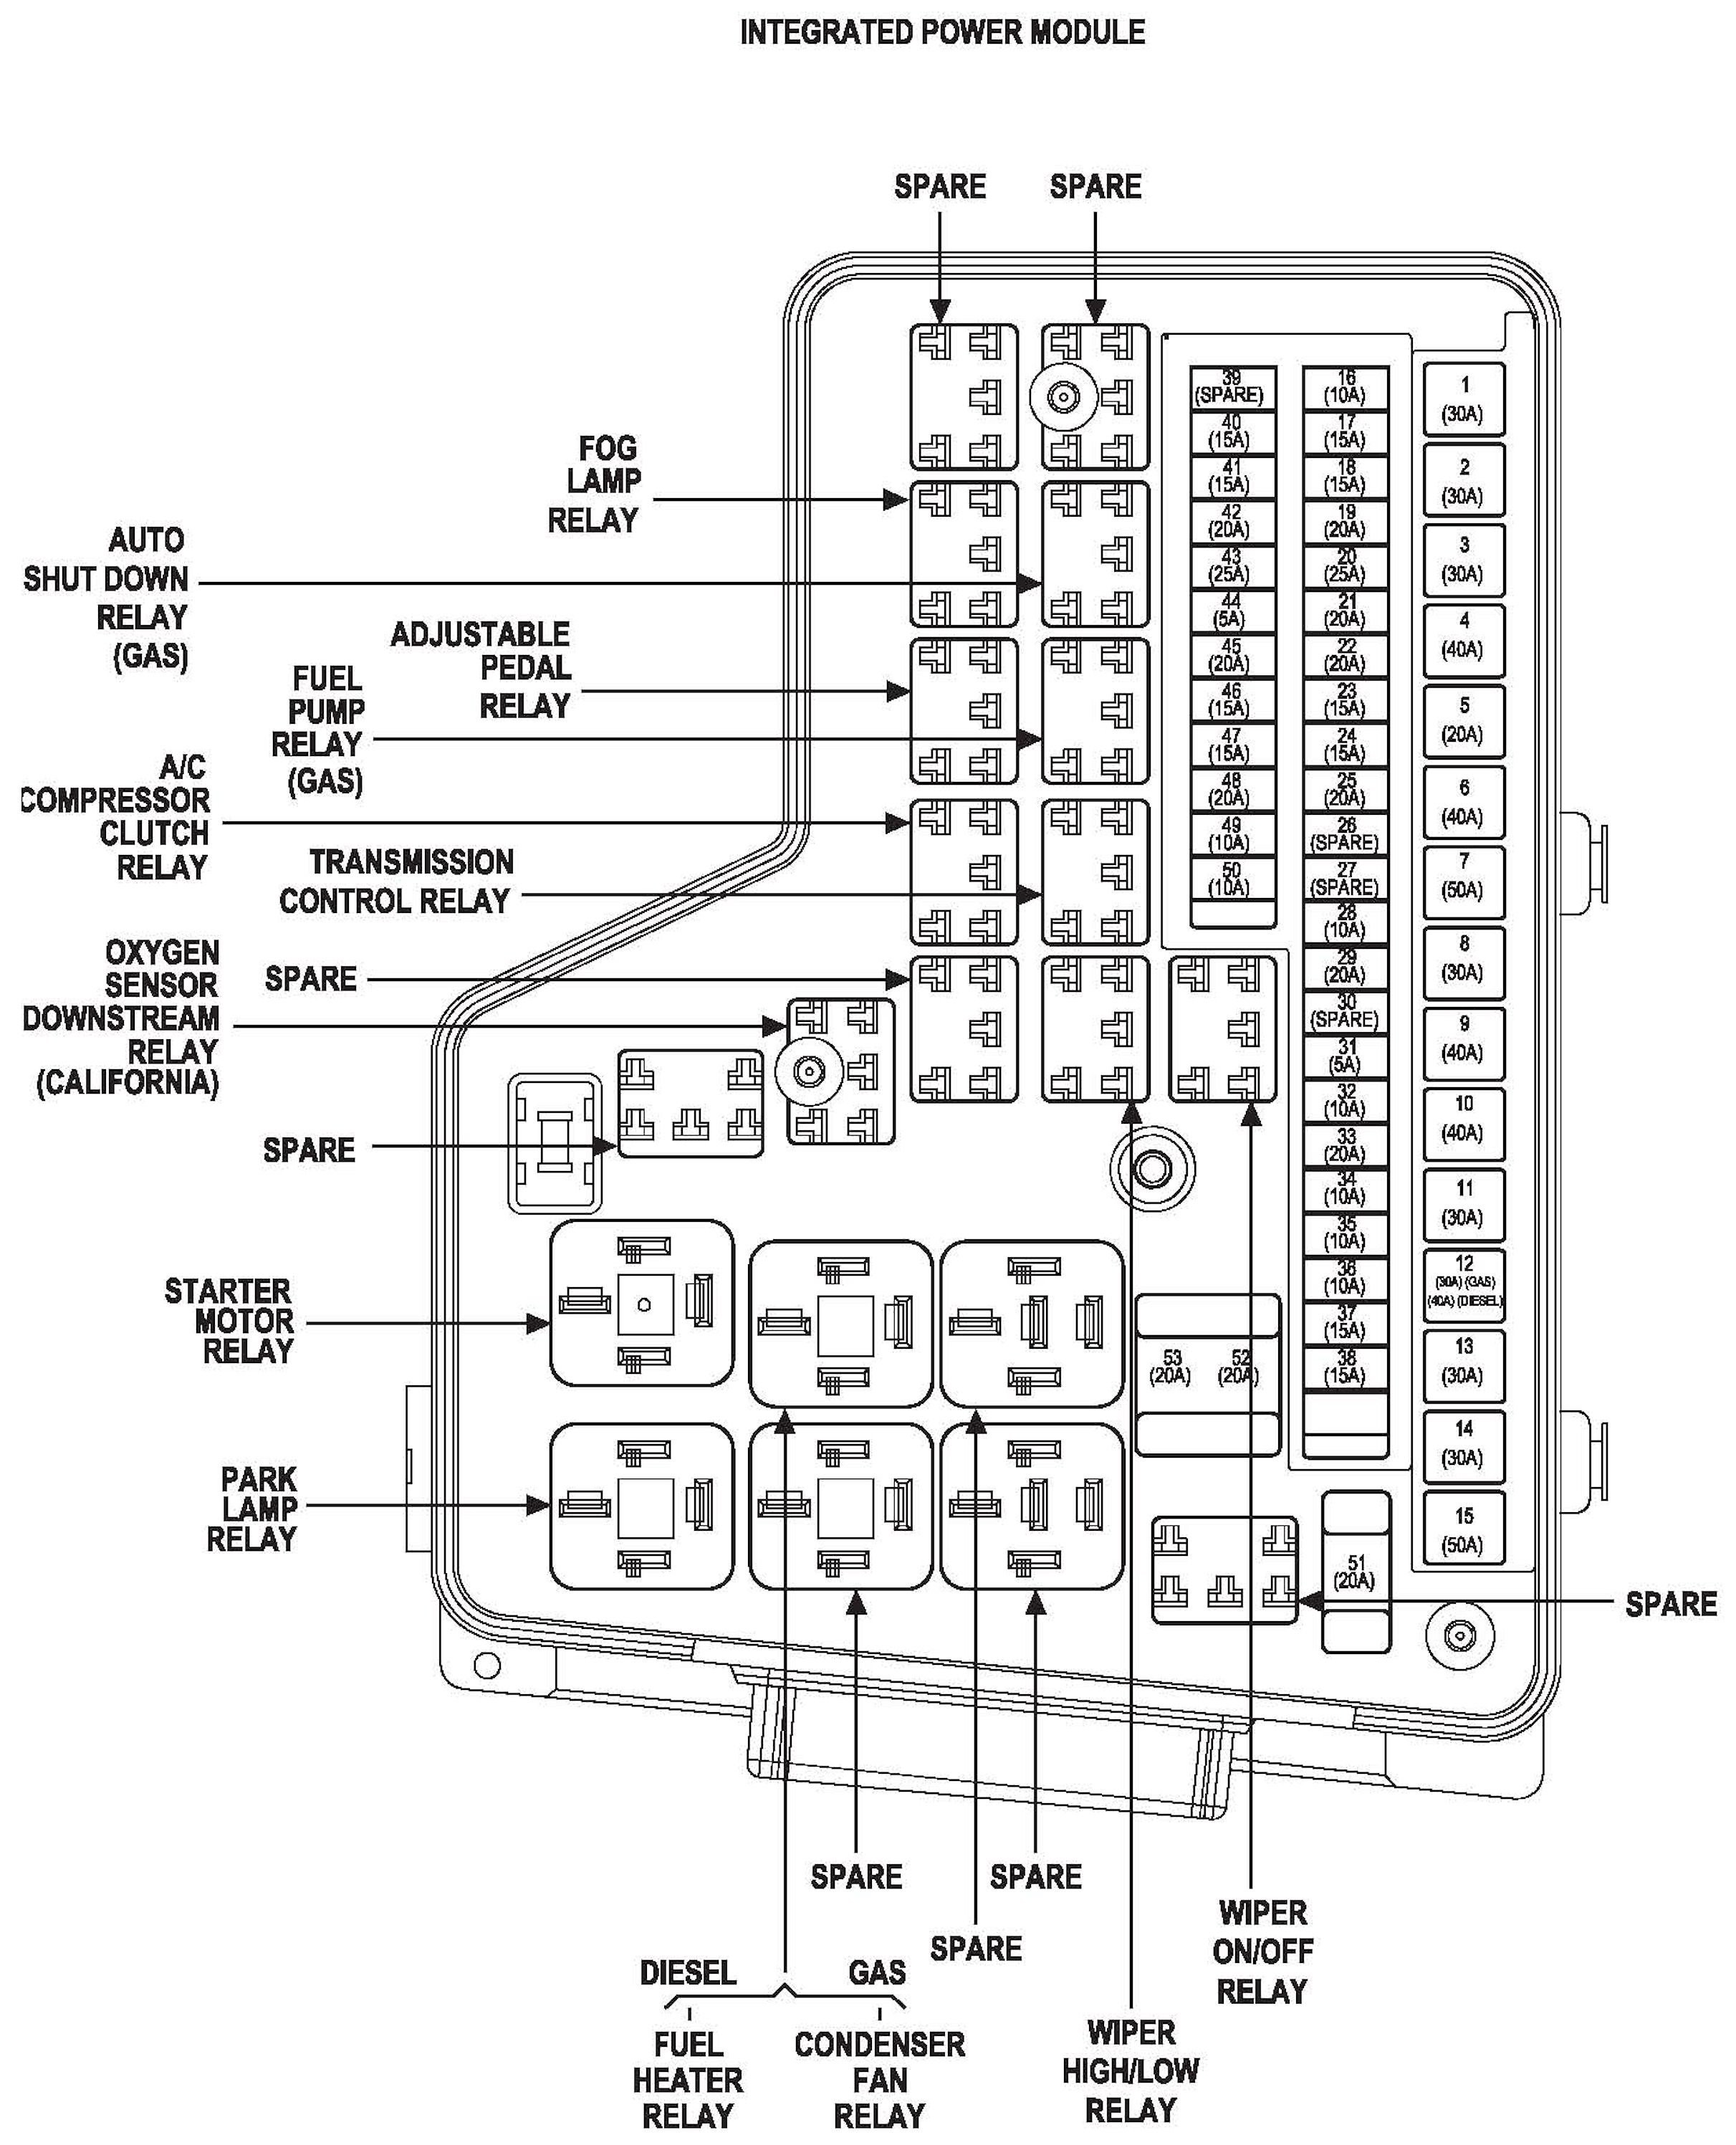 05 Dodge Ram Fuse Diagram Wiring Online 99 Honda Accord Box 2005 Data